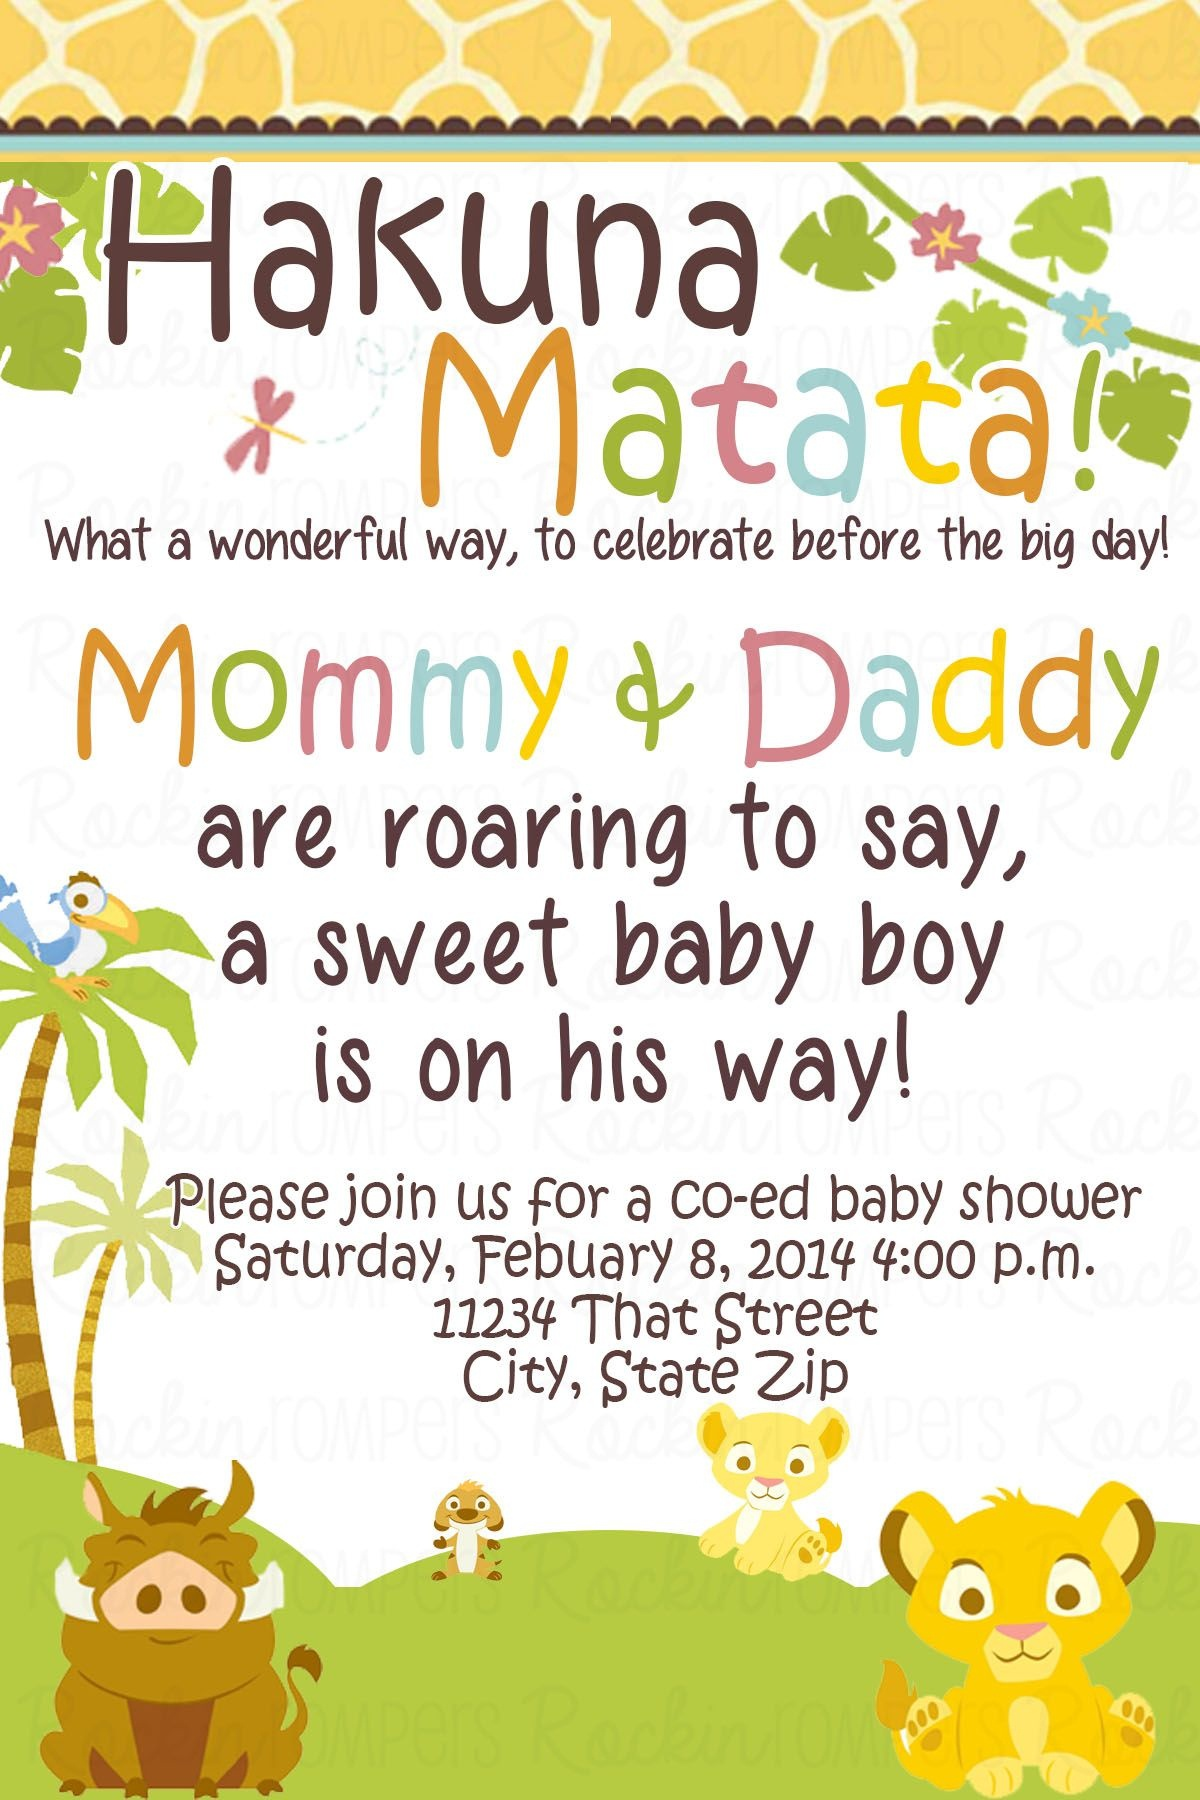 Lion King Baby Shower Invitation Www.facebook/rockinrompers Www - Free Printable Lion King Baby Shower Invitations